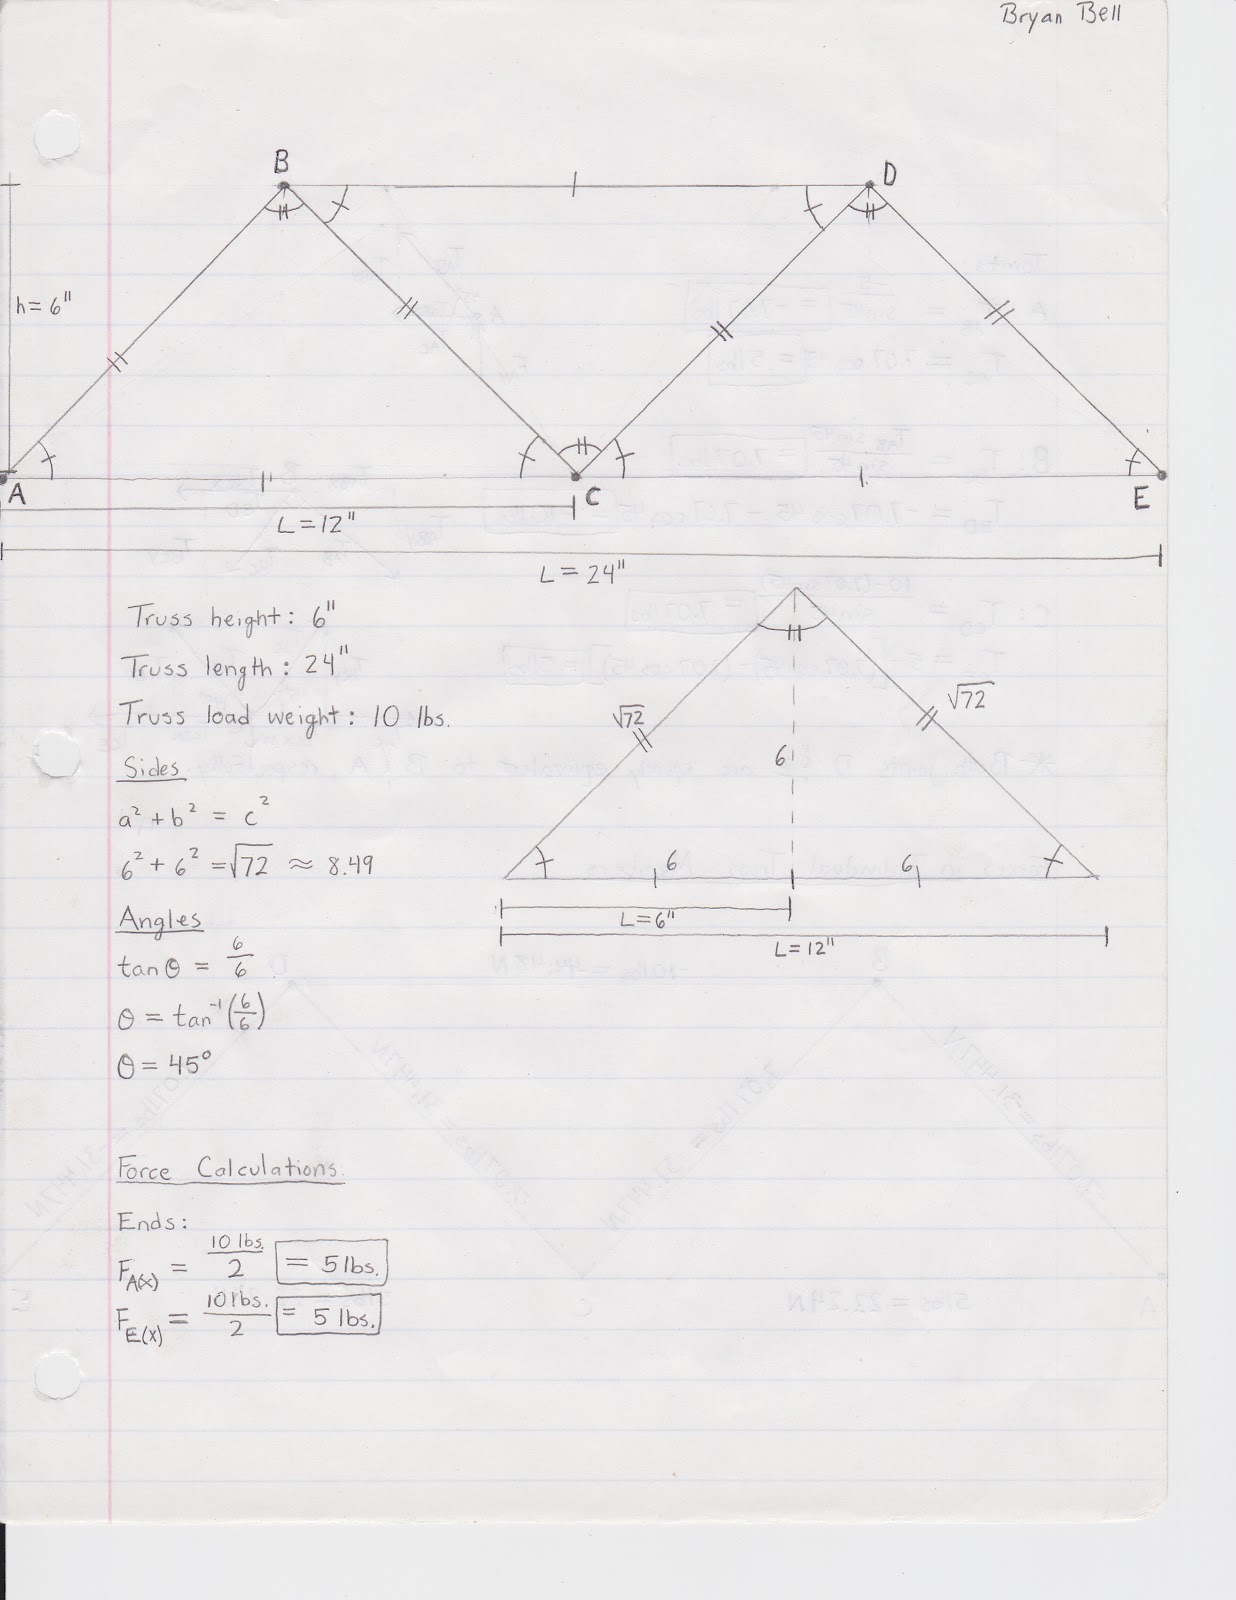 small resolution of it was just simple trigonometry and force diagrams to figure out the force on each member both in pounds and in newtons the results of my truss analysis is